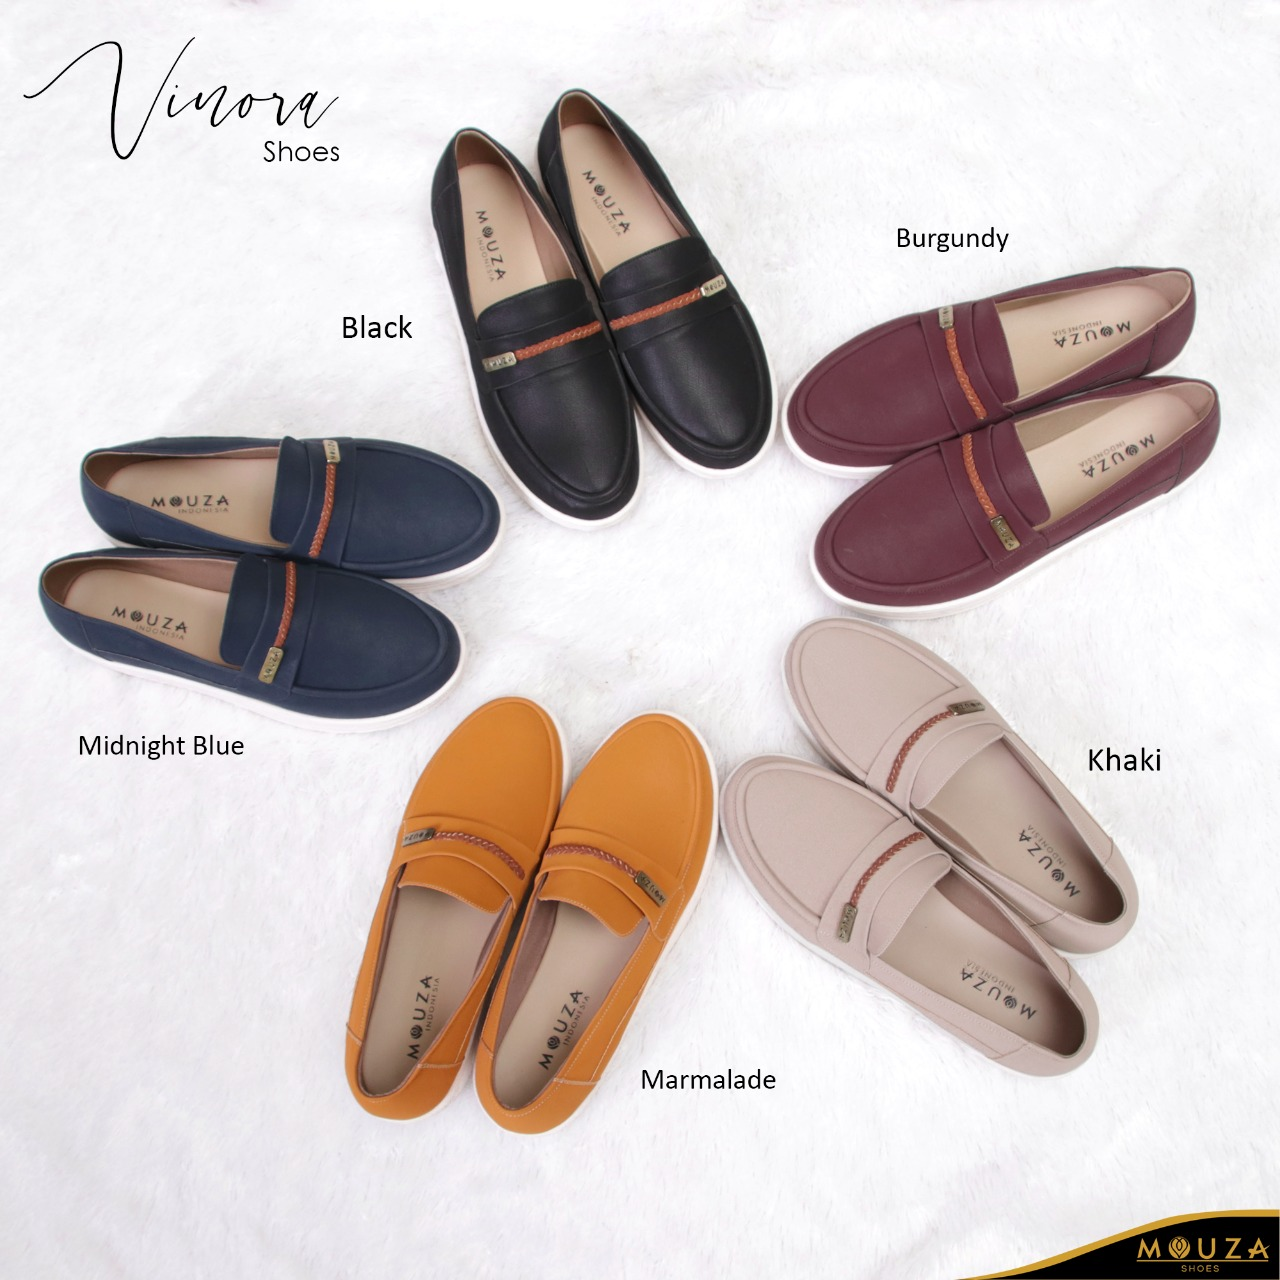 Vinora Shoes